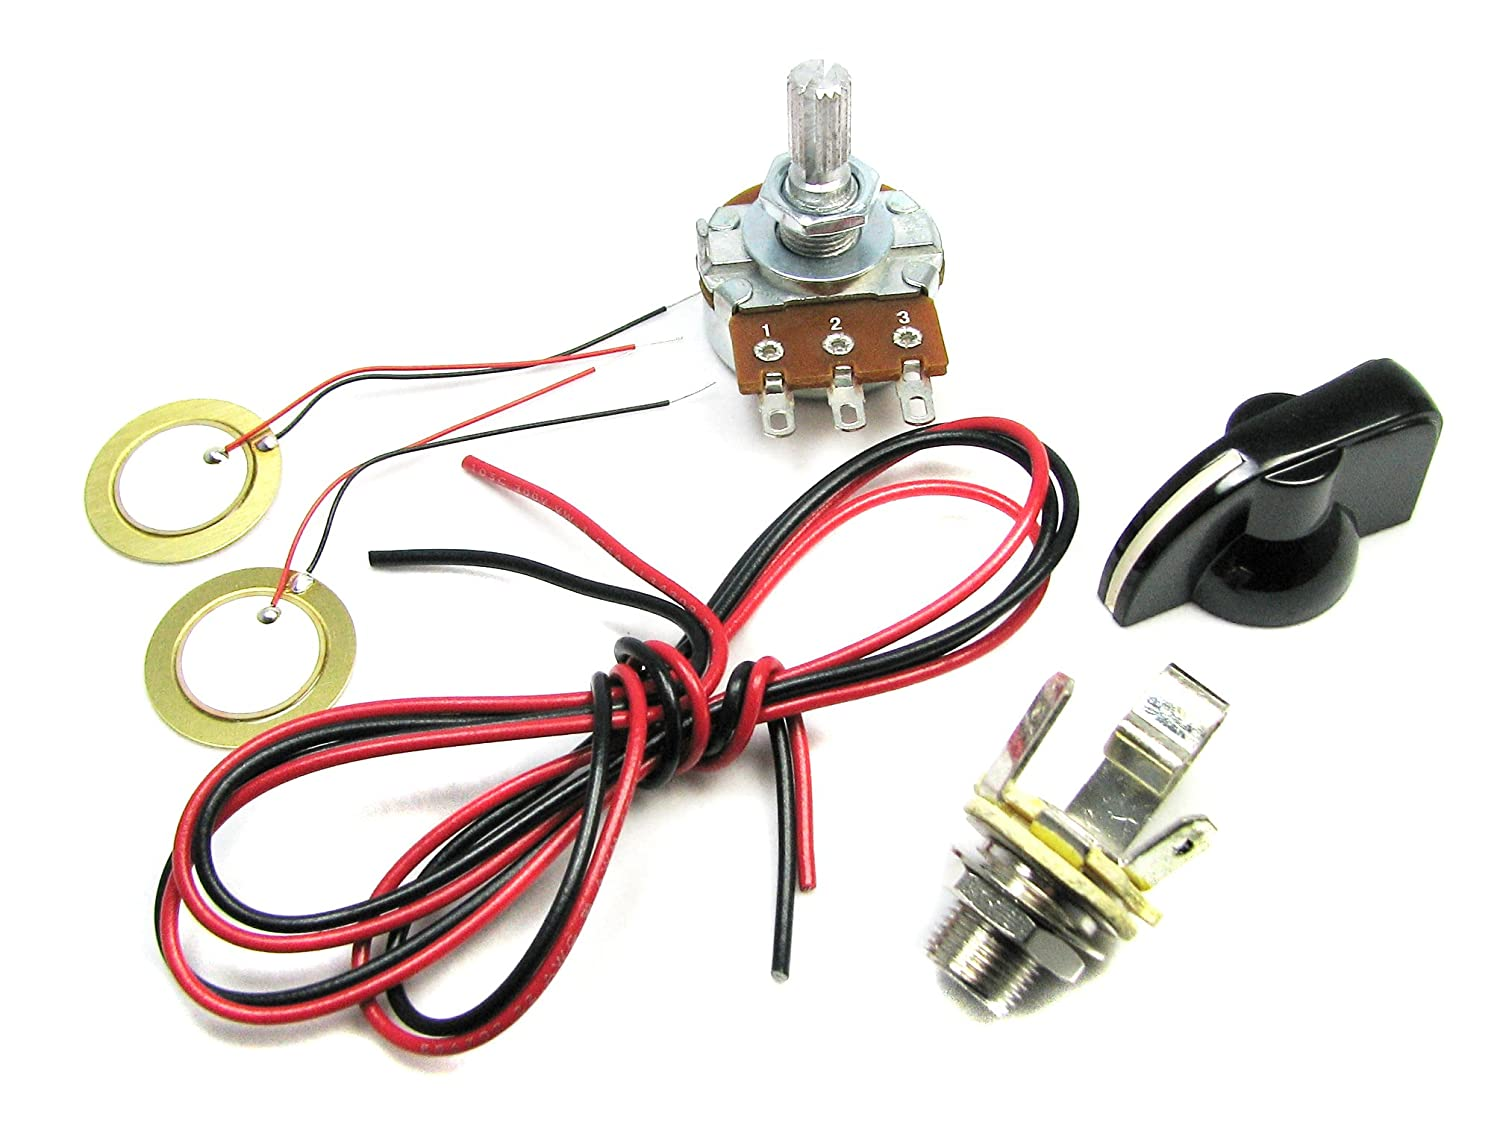 Generous 3 Single Coil Pickups Thick Dimarzio Pickup Wiring Shaped Strat Hss Wiring Gibson 3 Way Switch Young Hh Strat Wiring SoftWire Guitars Amazon.com: Do It Yourself Piezo Pickup Kit For Cigar Box Guitars ..